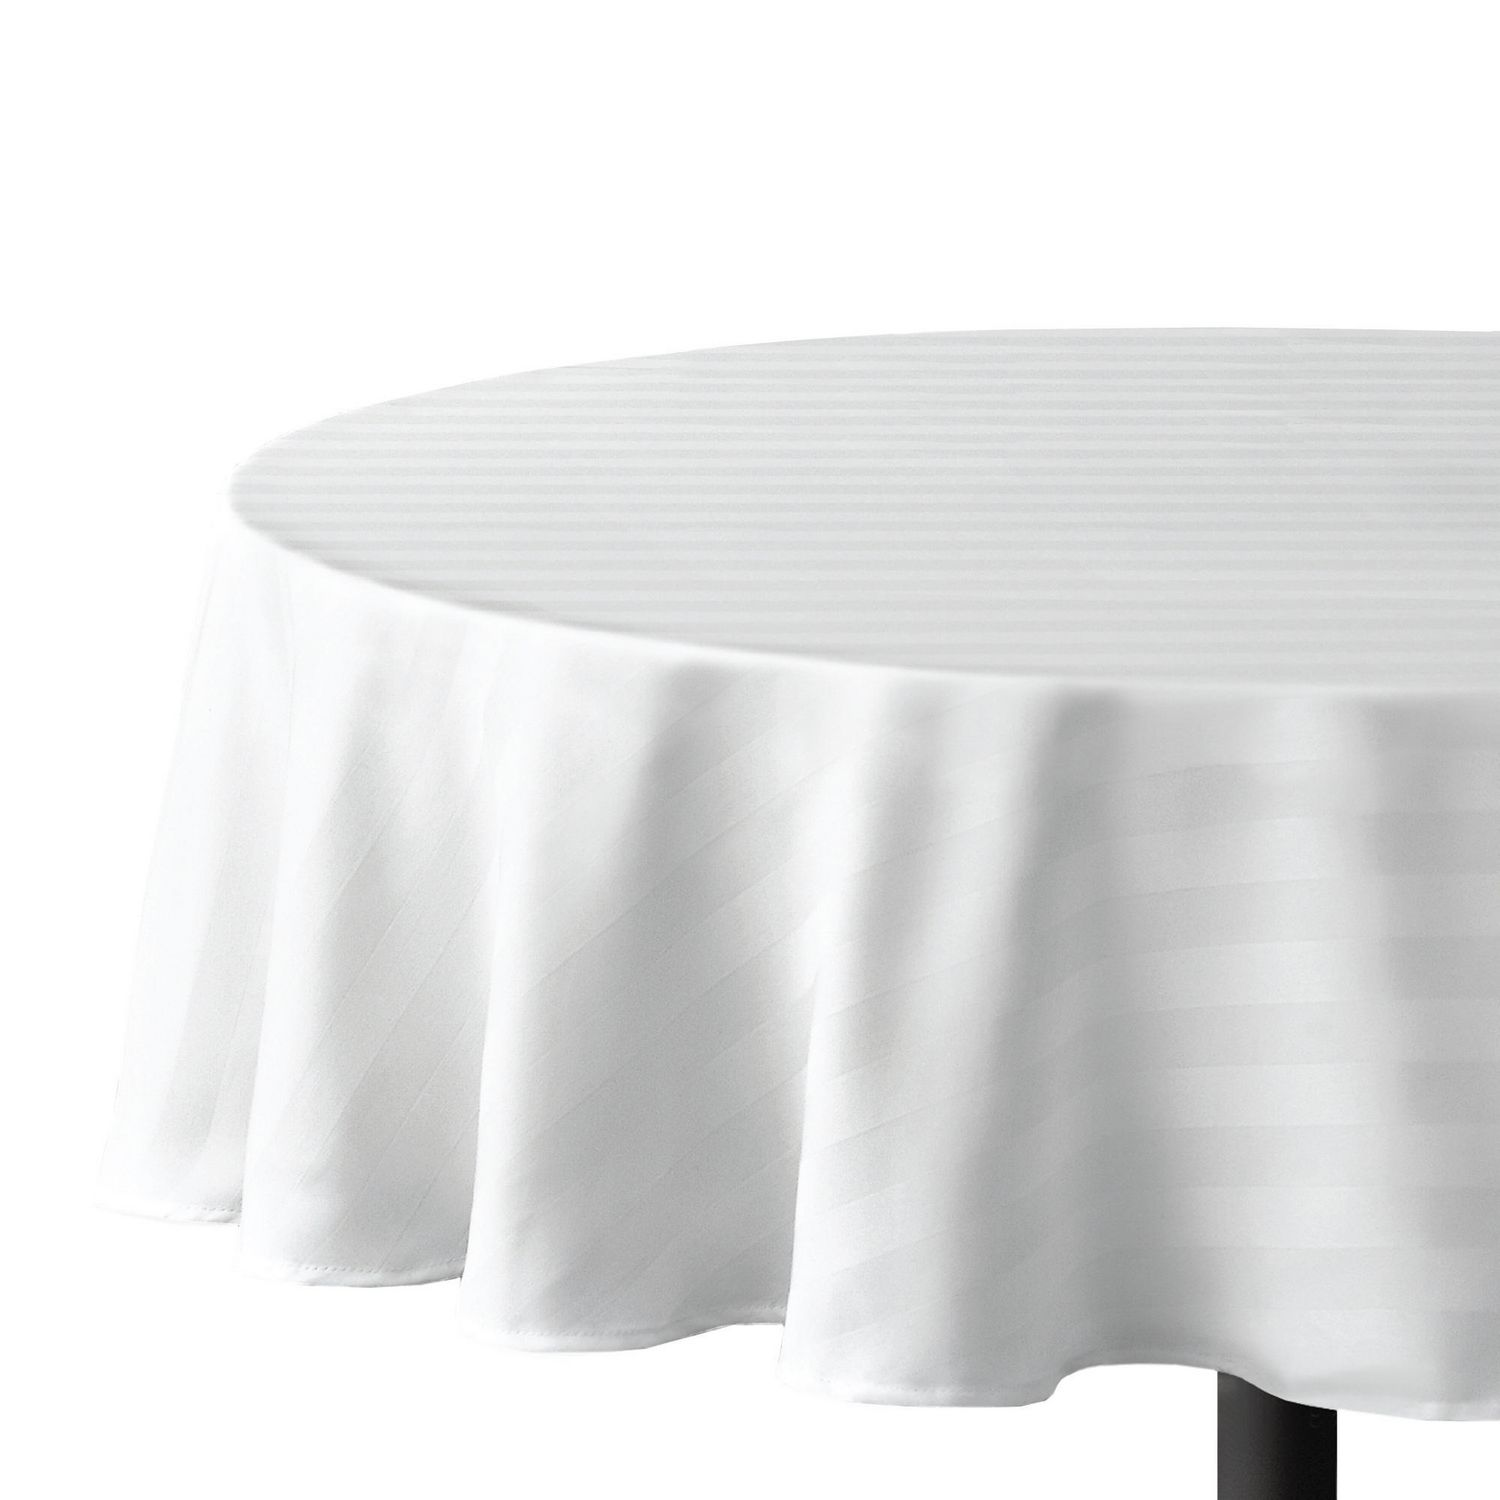 Nappe De Table Ronde Nappe De Table Ronde Rayée Hometrends En Microfibre